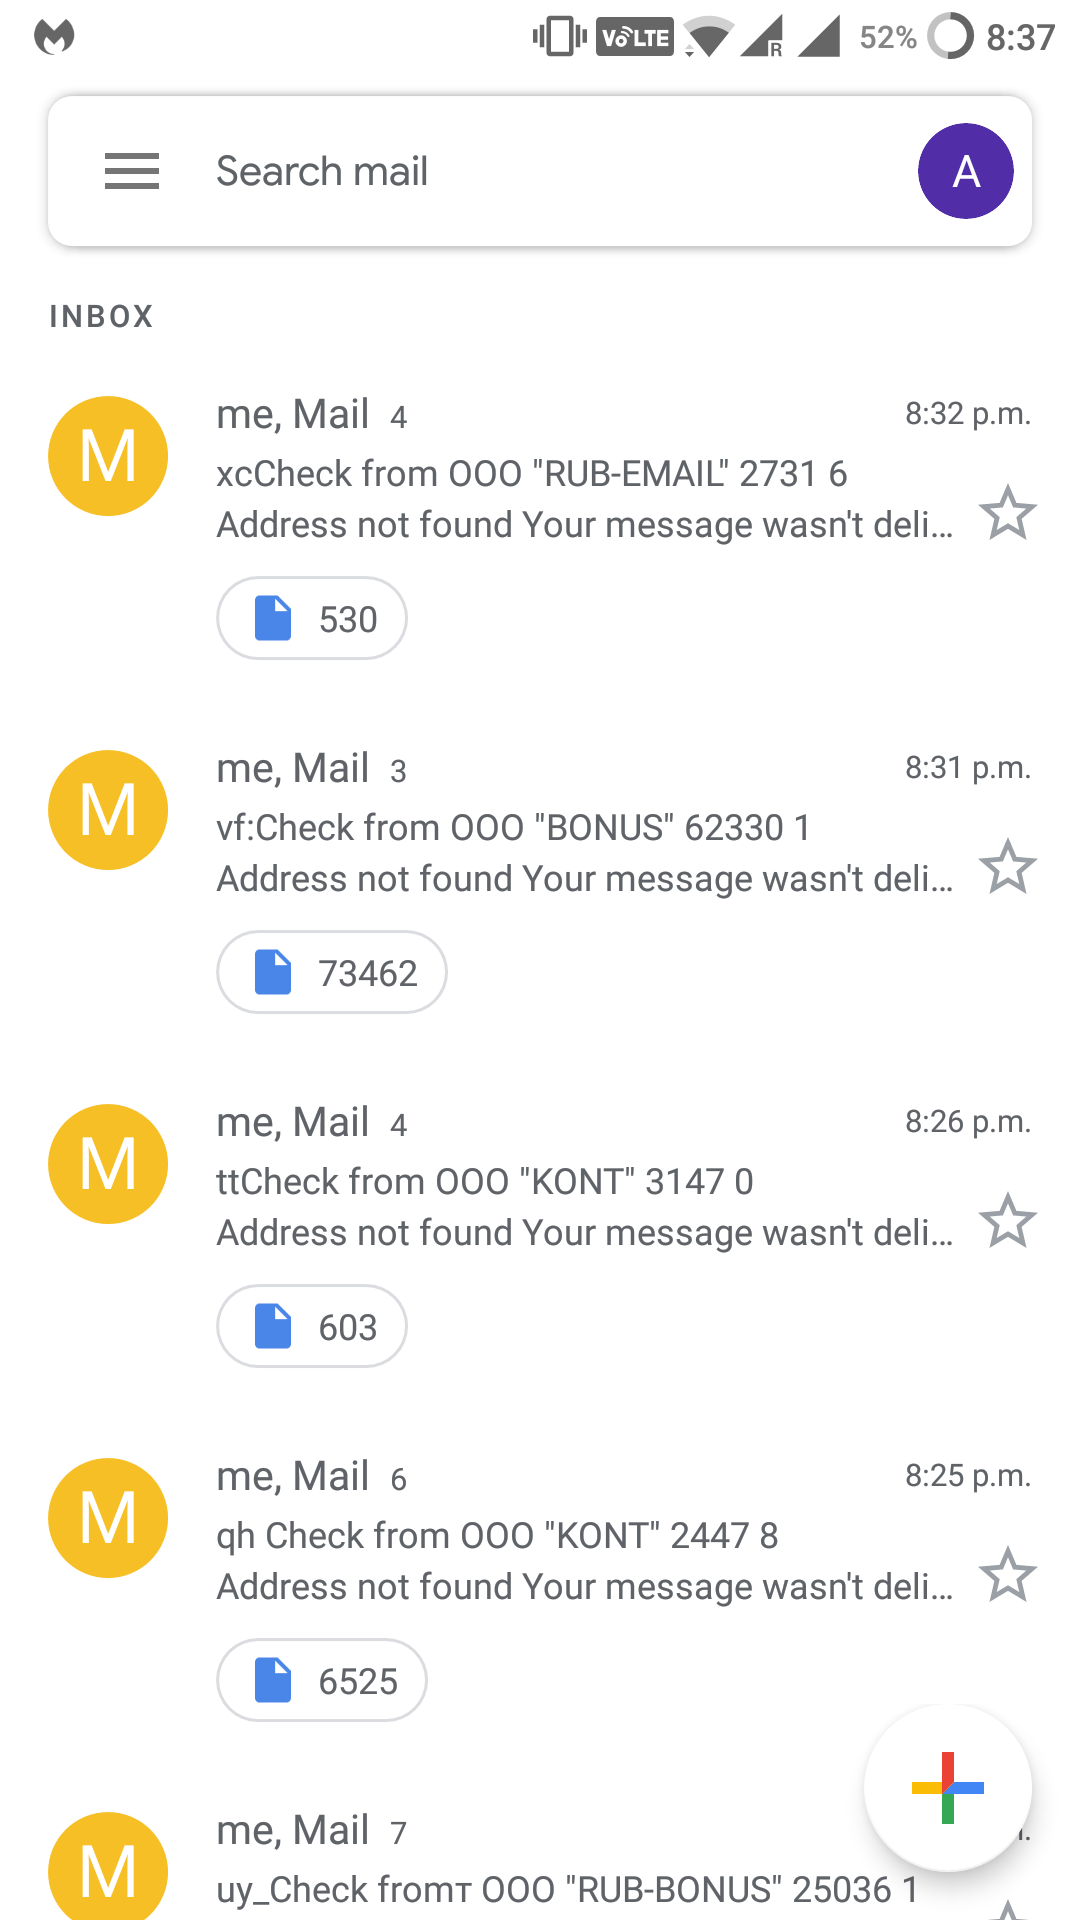 Gmail account sending out spam emails to random ids